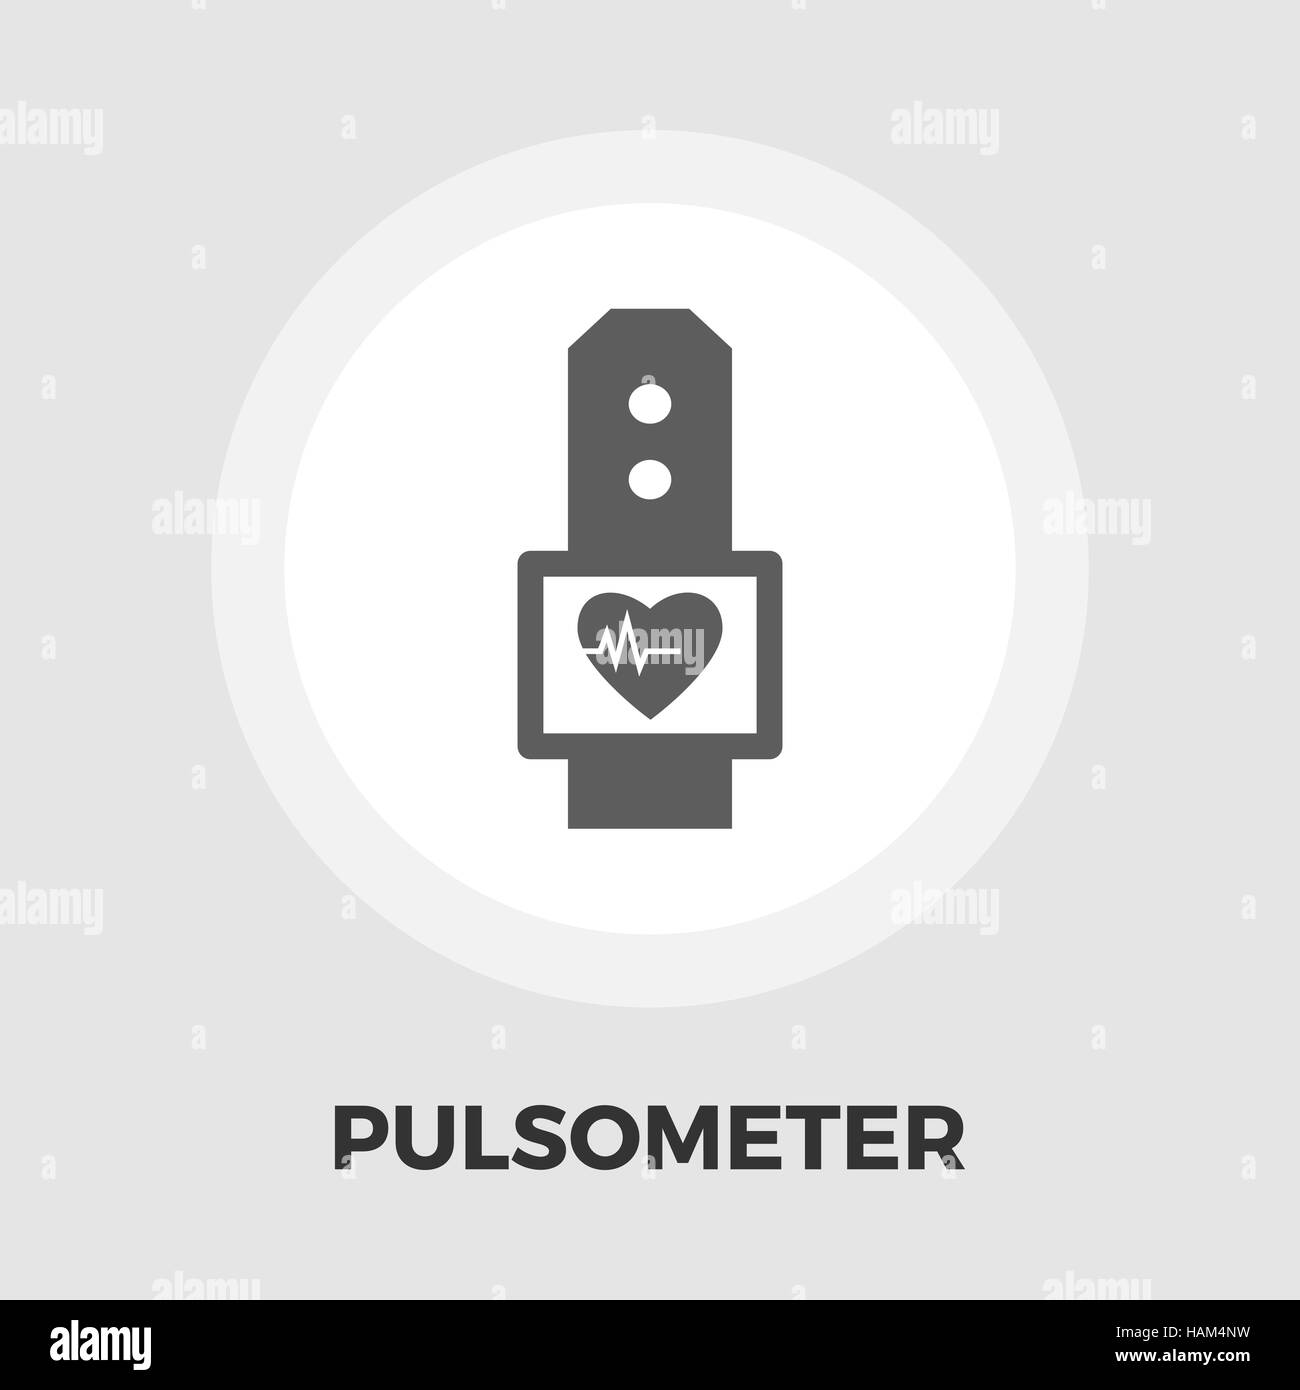 Pulsometer icon vector. Flat icon isolated on the white background. Editable EPS file. Vector illustration. - Stock Image